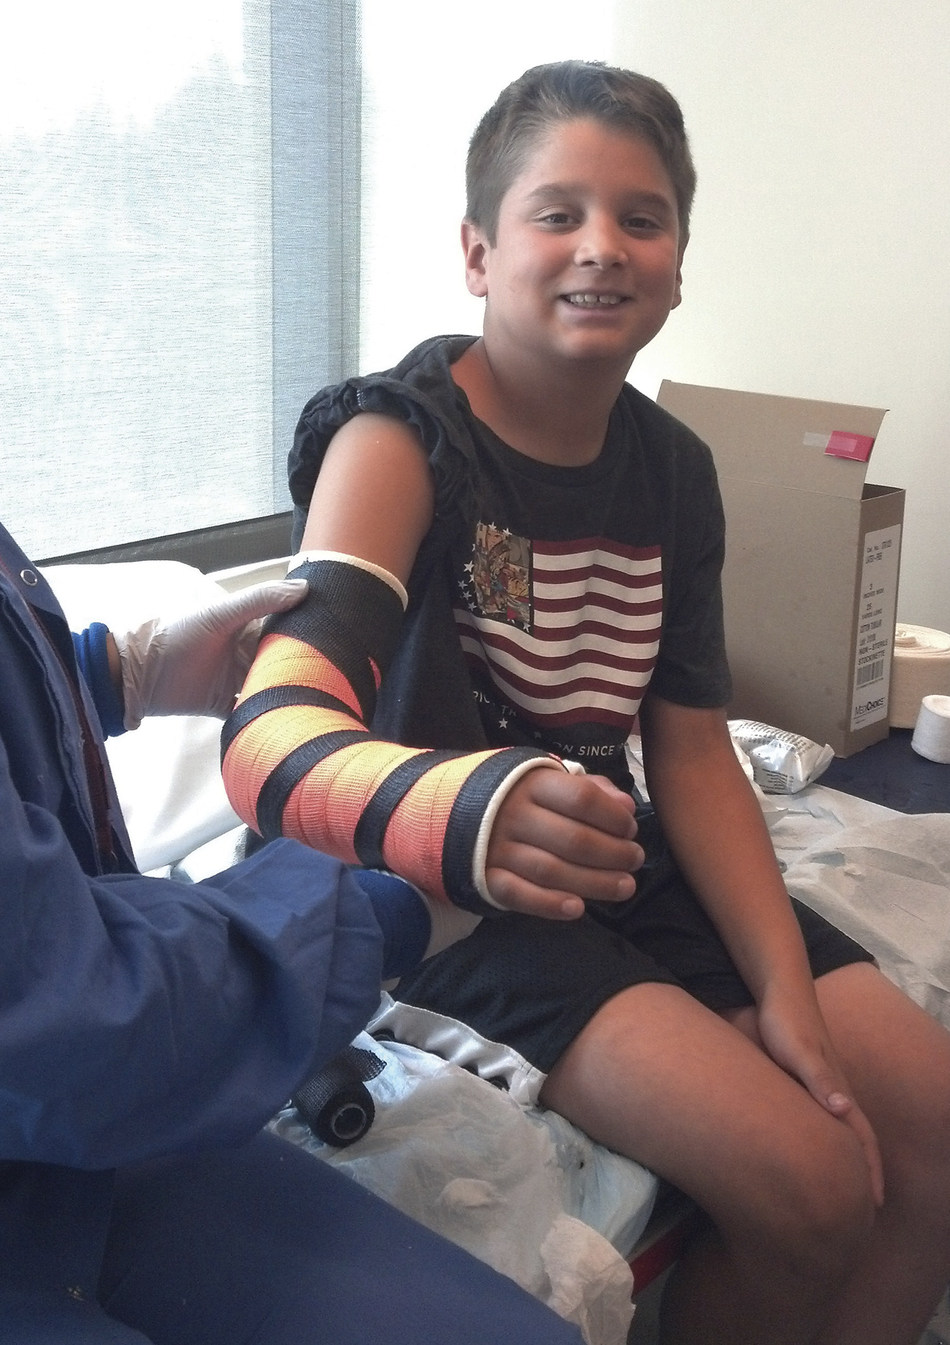 Photo Courtesy of Shriners Hospitals for Children